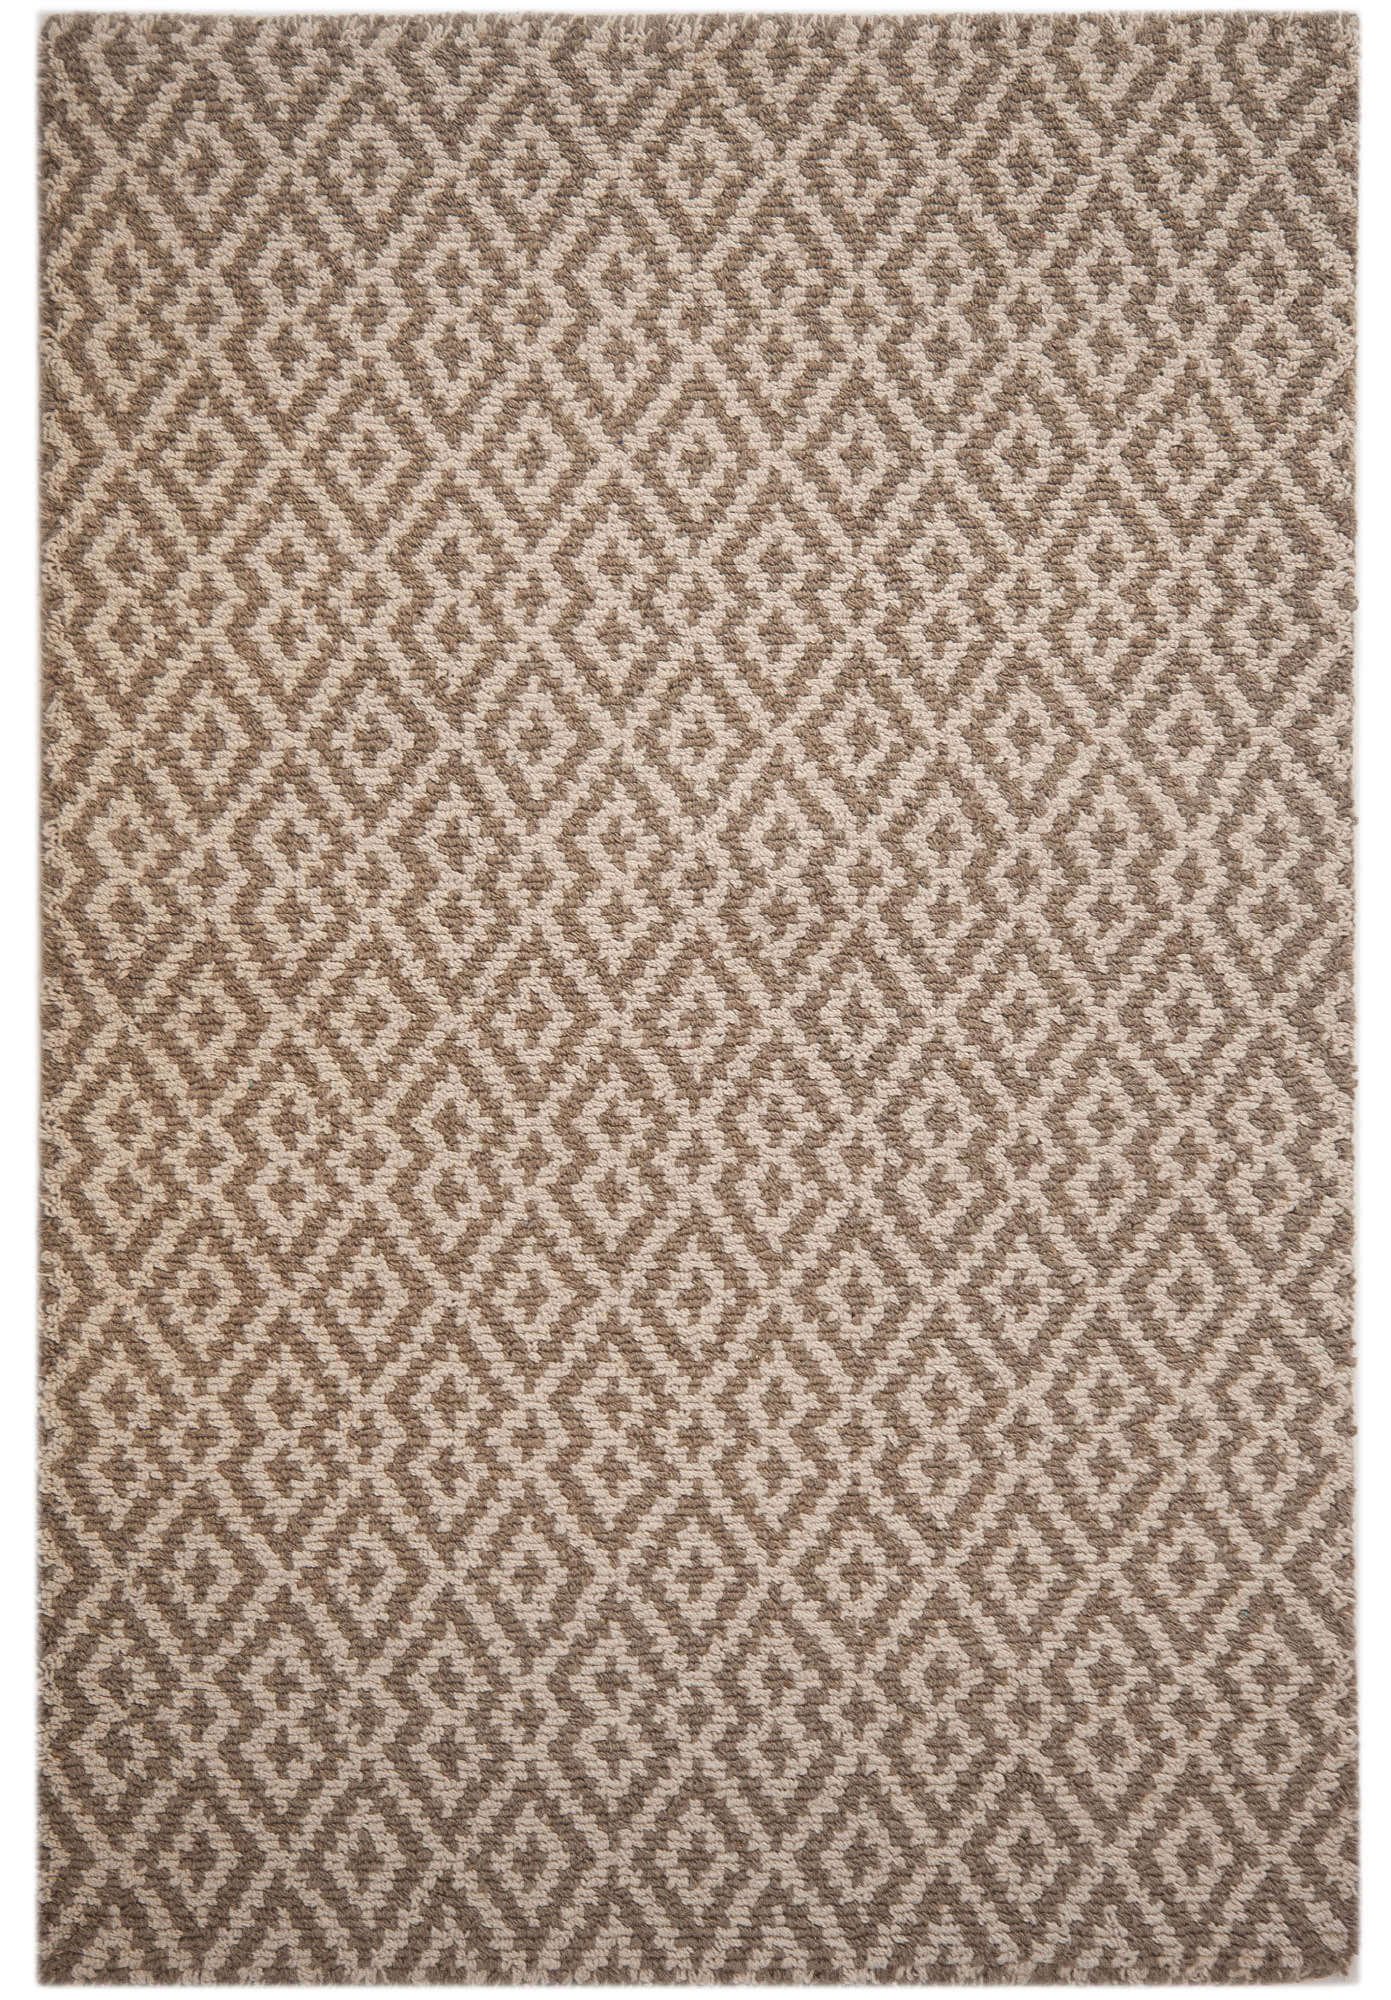 Barcelona Taupe Natural Eco Cotton Loom Hooked Rug Hook